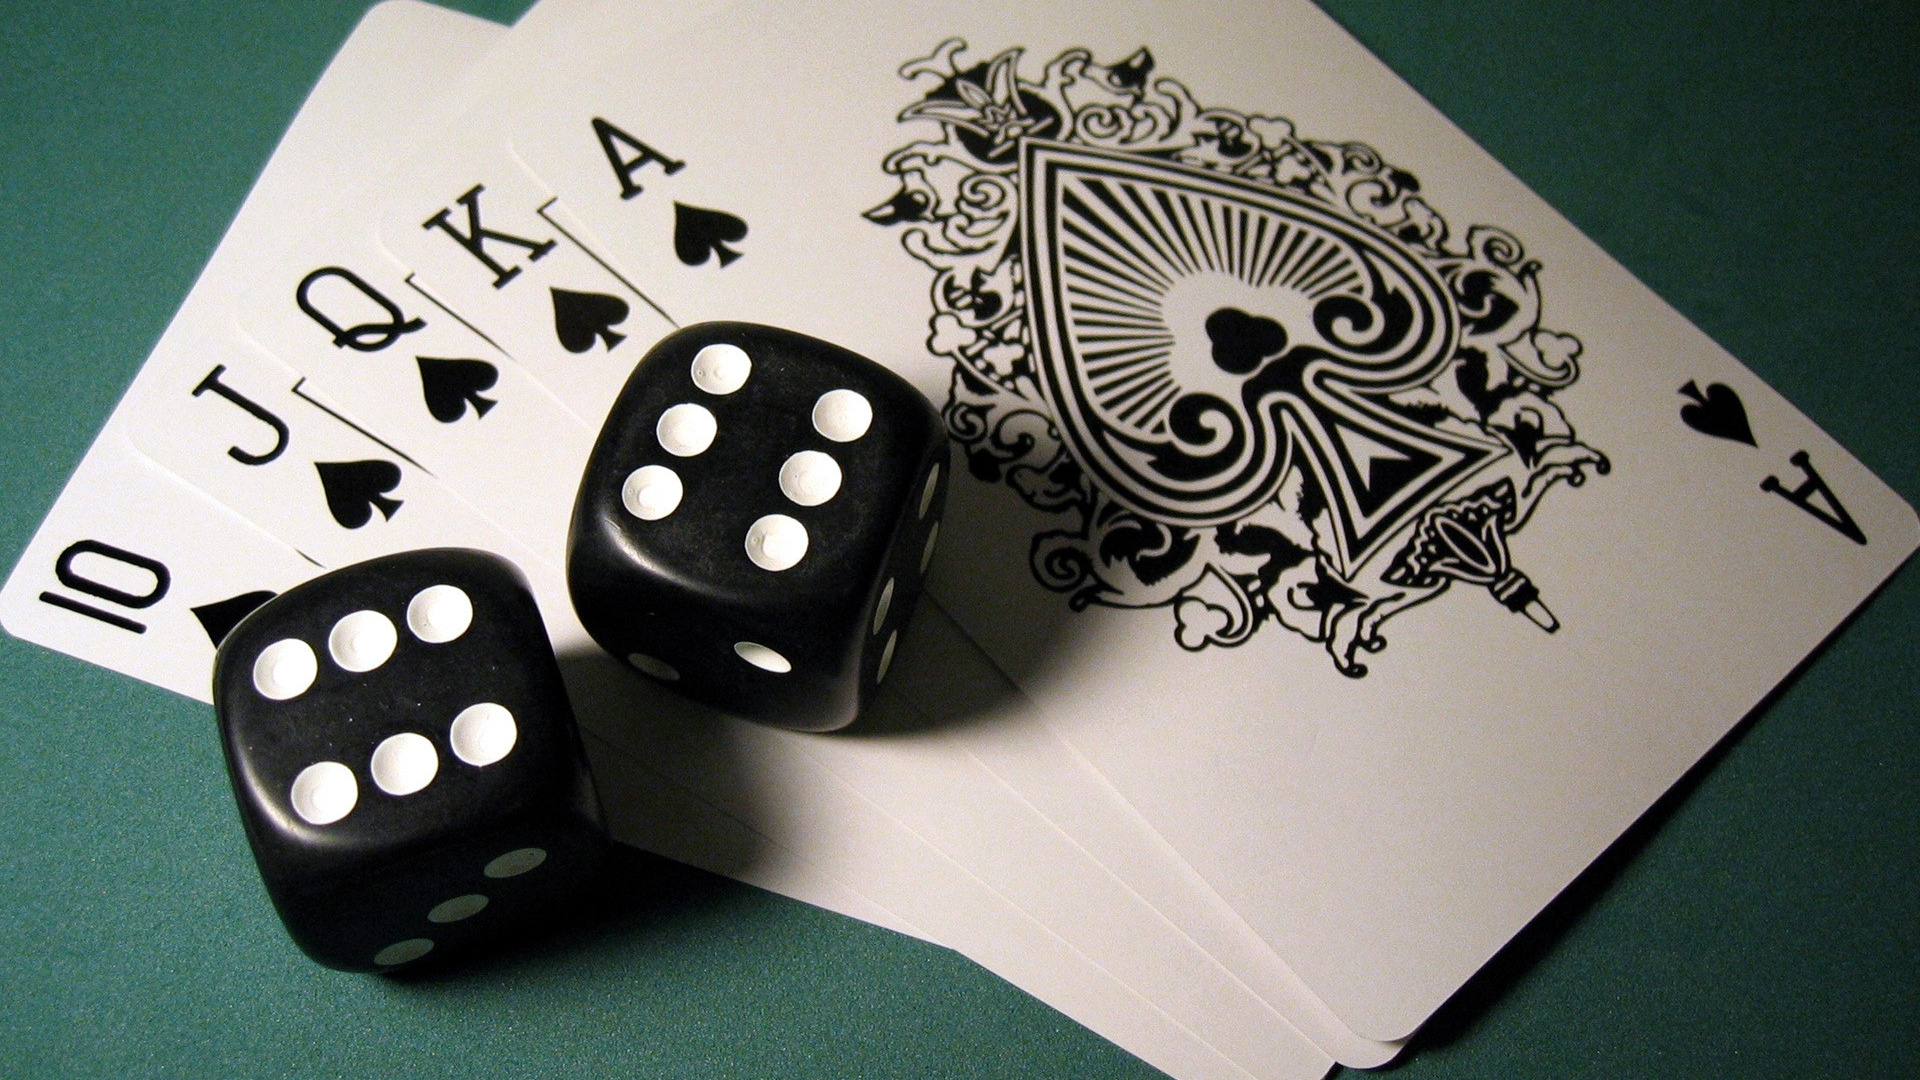 The Low Down On Gambling Exposed